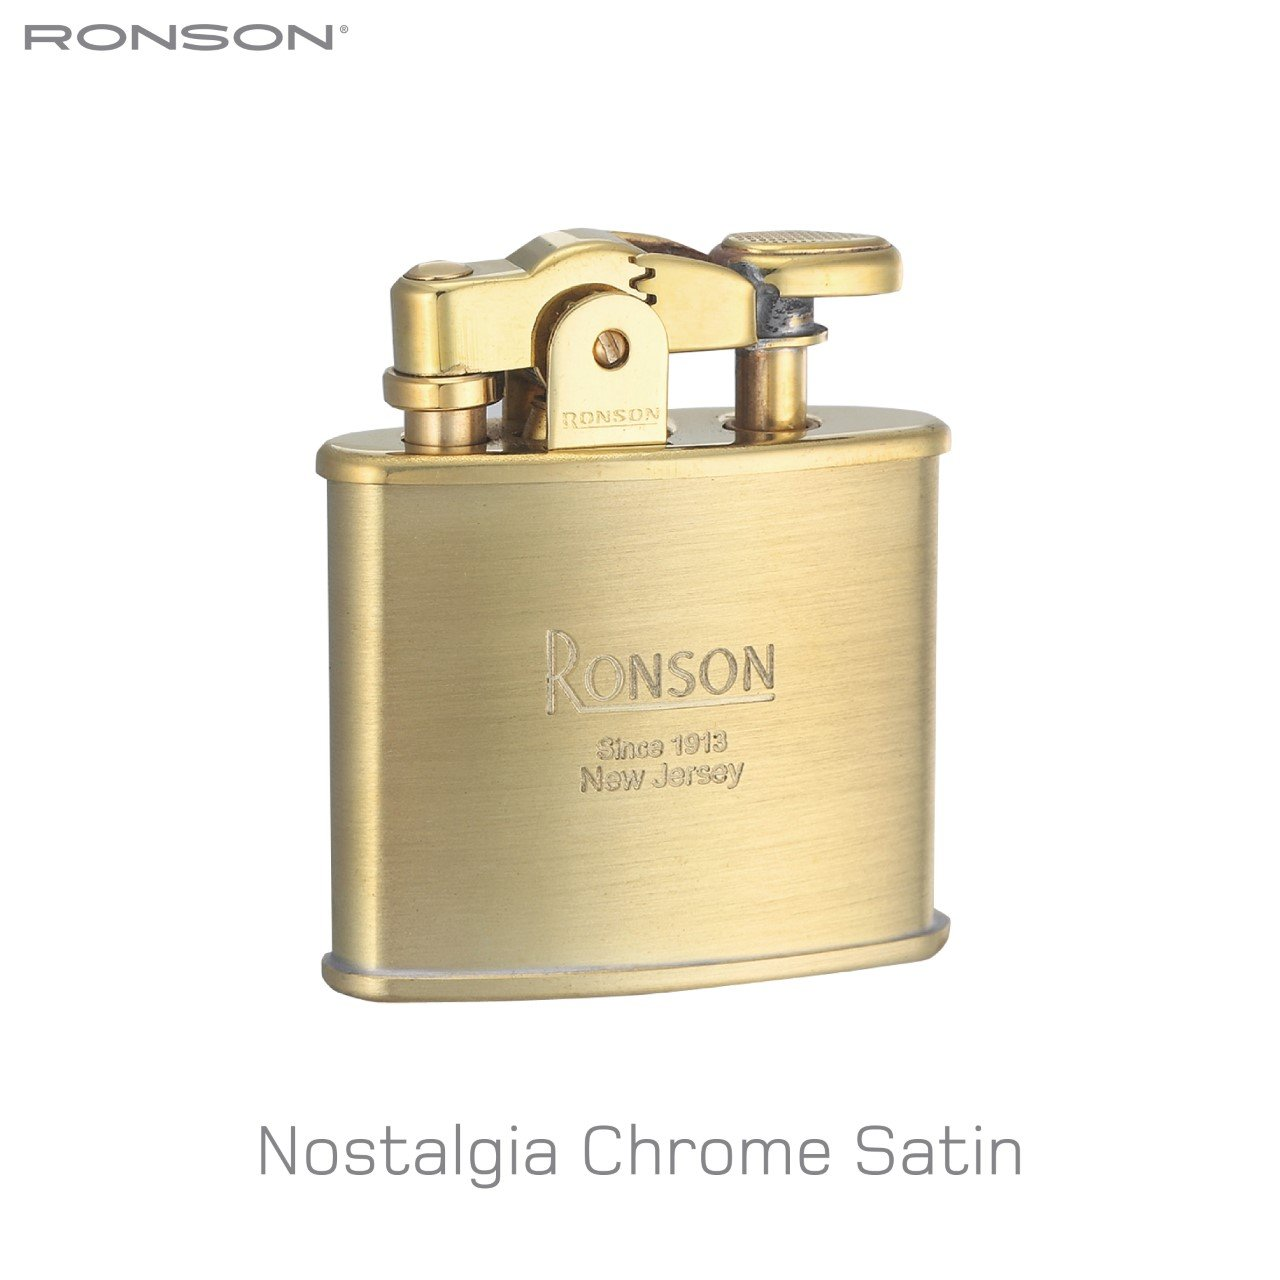 Ronson Nostalgia Standard Satin Brass Soft Flame Petrol Lighter New Gift Boxed by Ronson (Image #1)